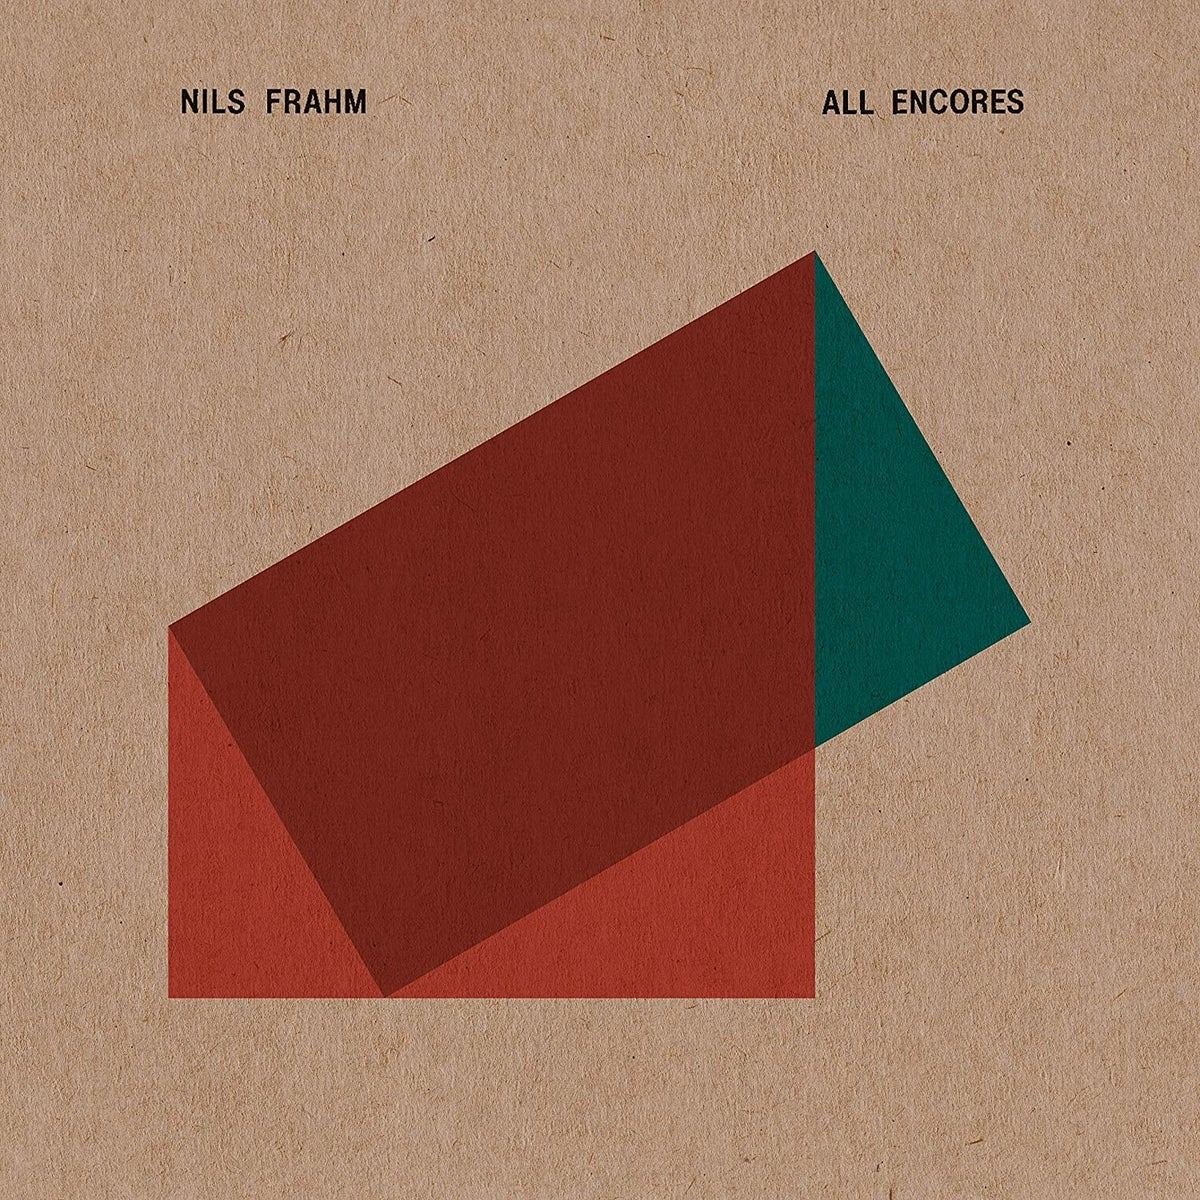 Image of Nils Frahm - All Encores